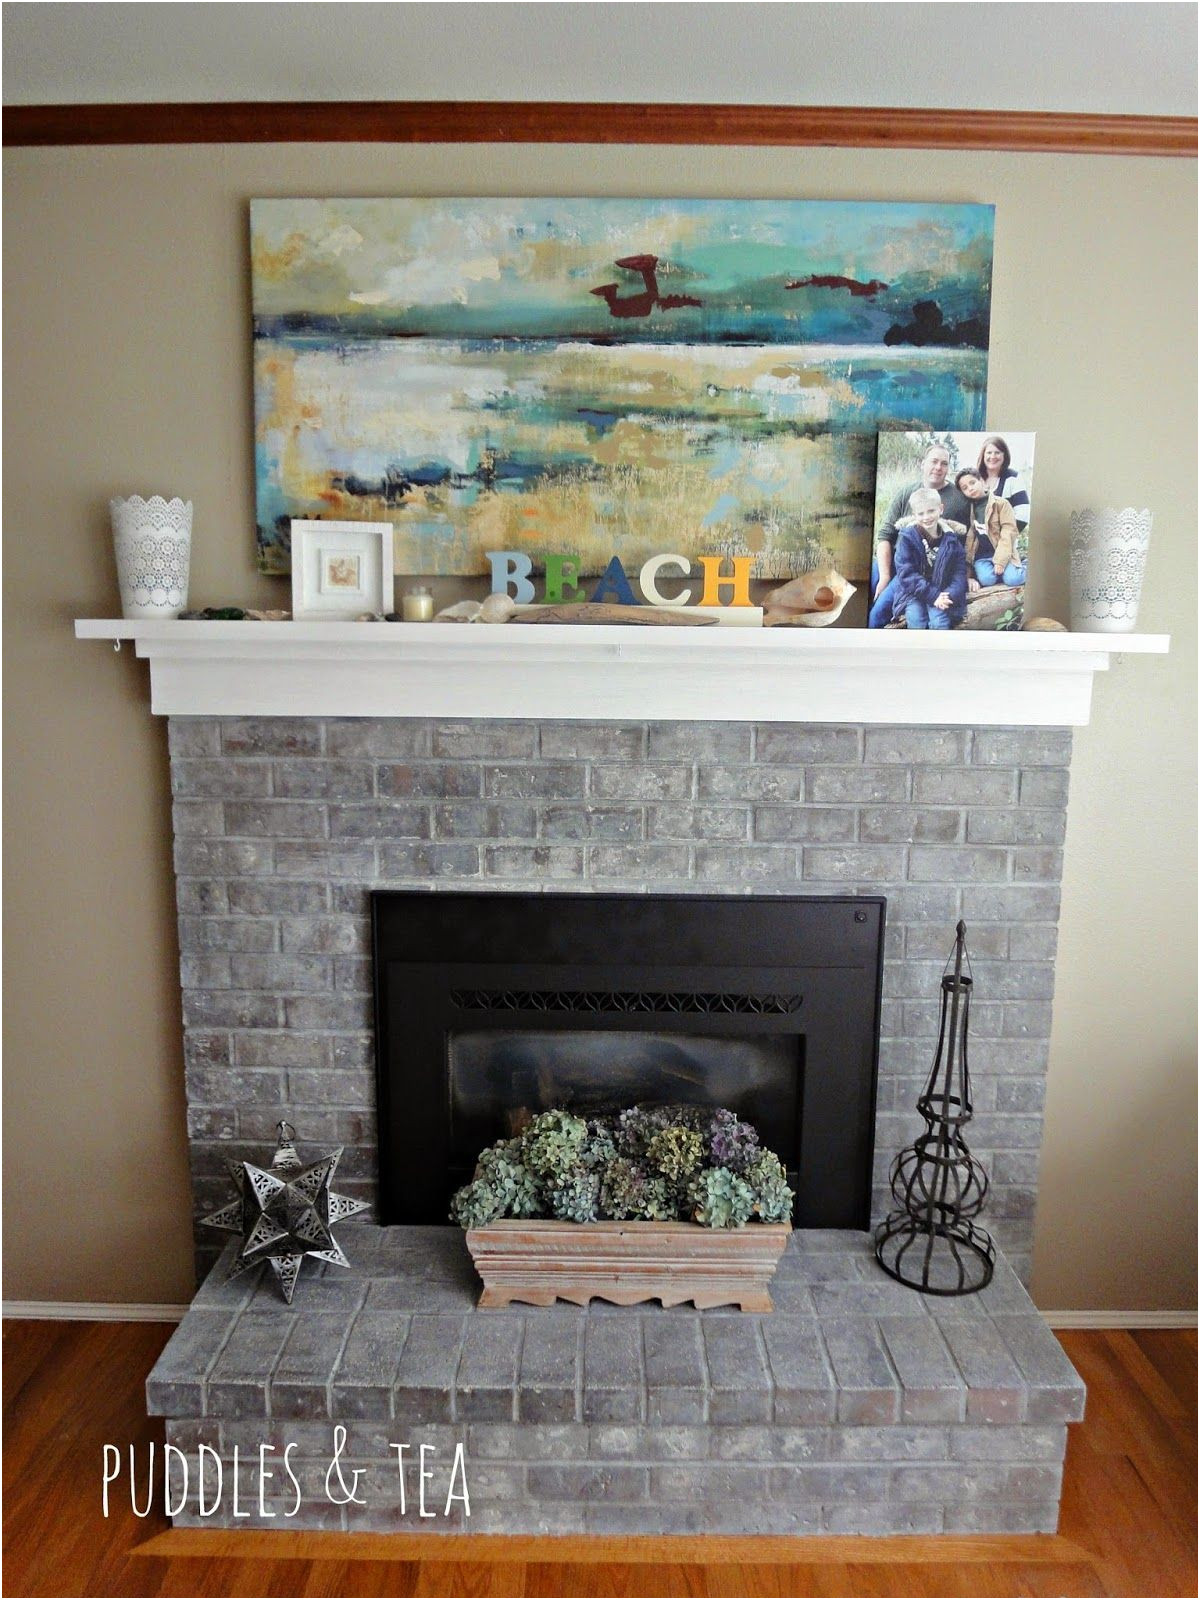 Remodel Brick Fireplace Lovely Puddles & Tea White Wash Brick Fireplace Makeover